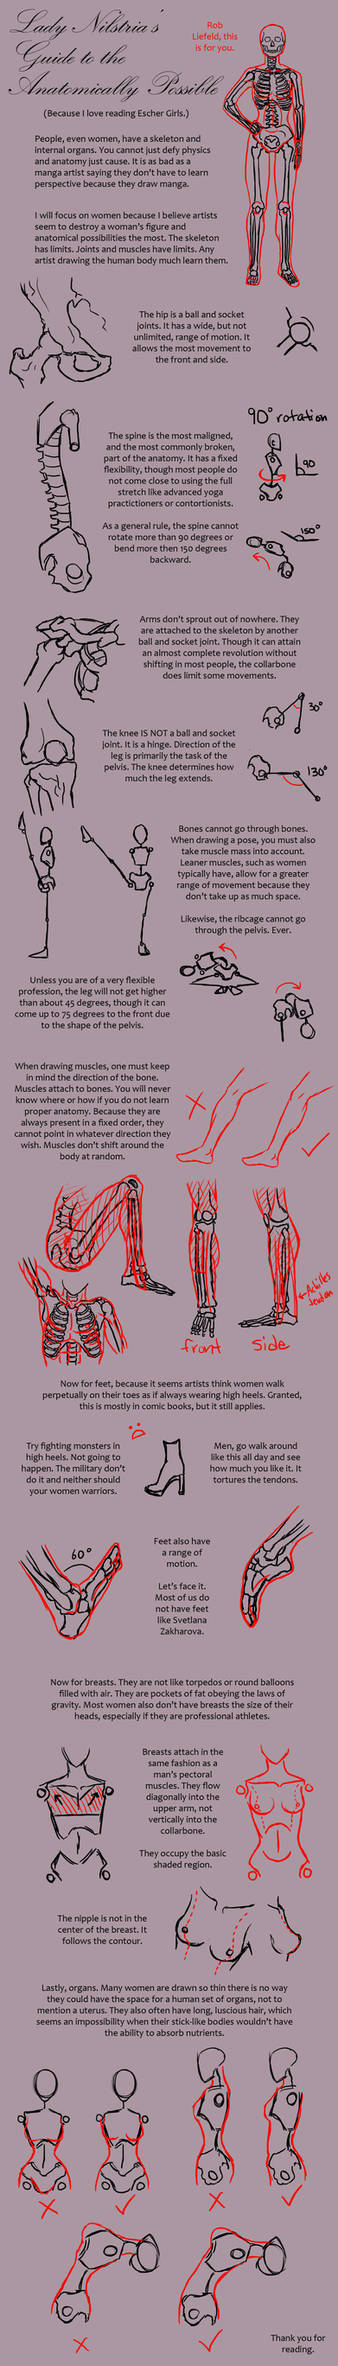 Lady Nilstria's Guide to the Anatomically Possible